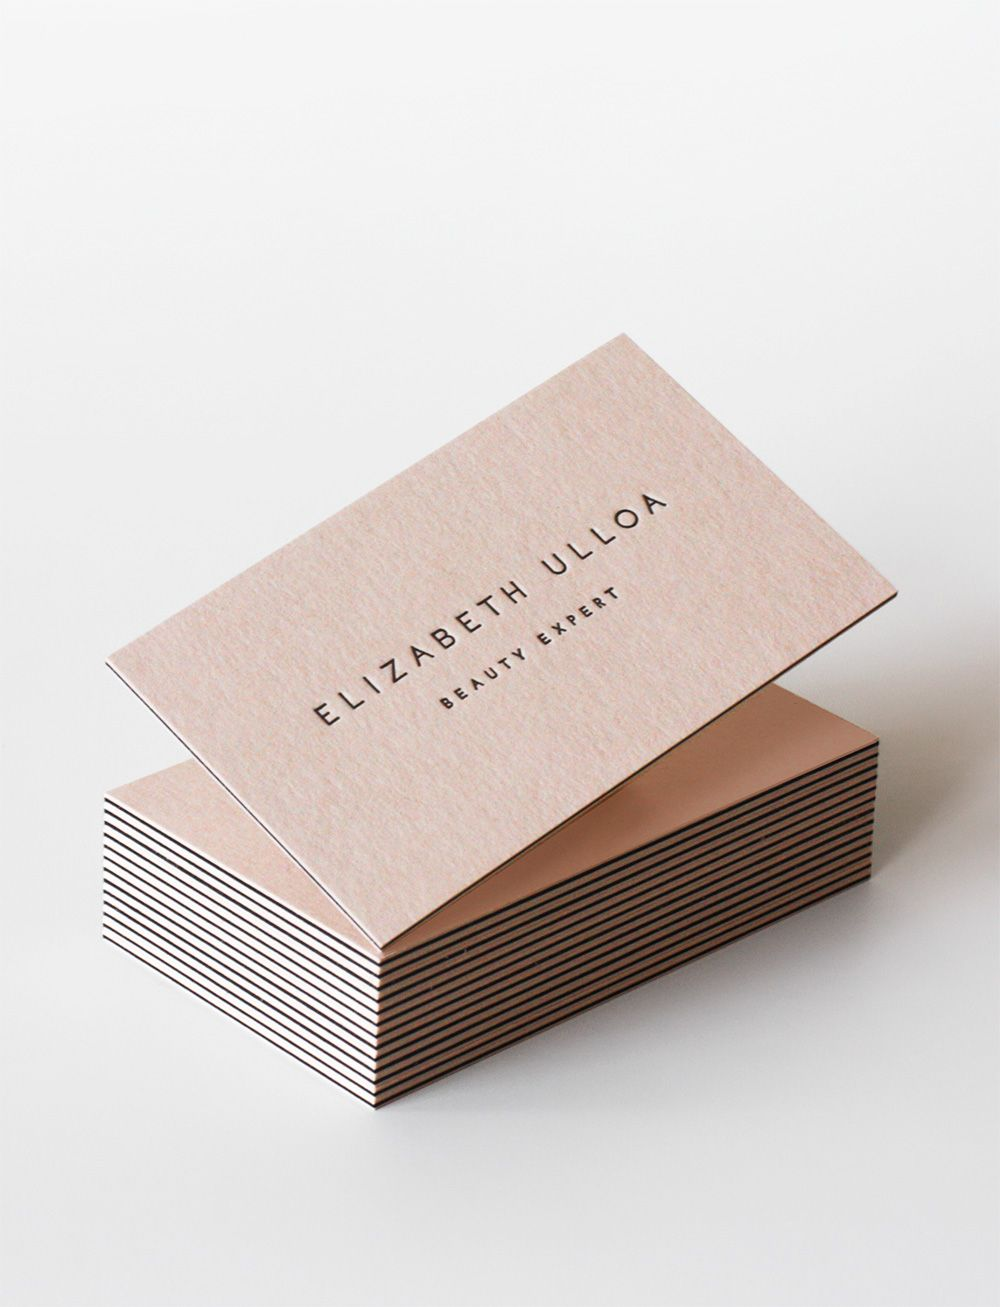 856 best business card design images on pinterest business 856 best business card design images on pinterest business cards stationery and corporate identity magicingreecefo Image collections